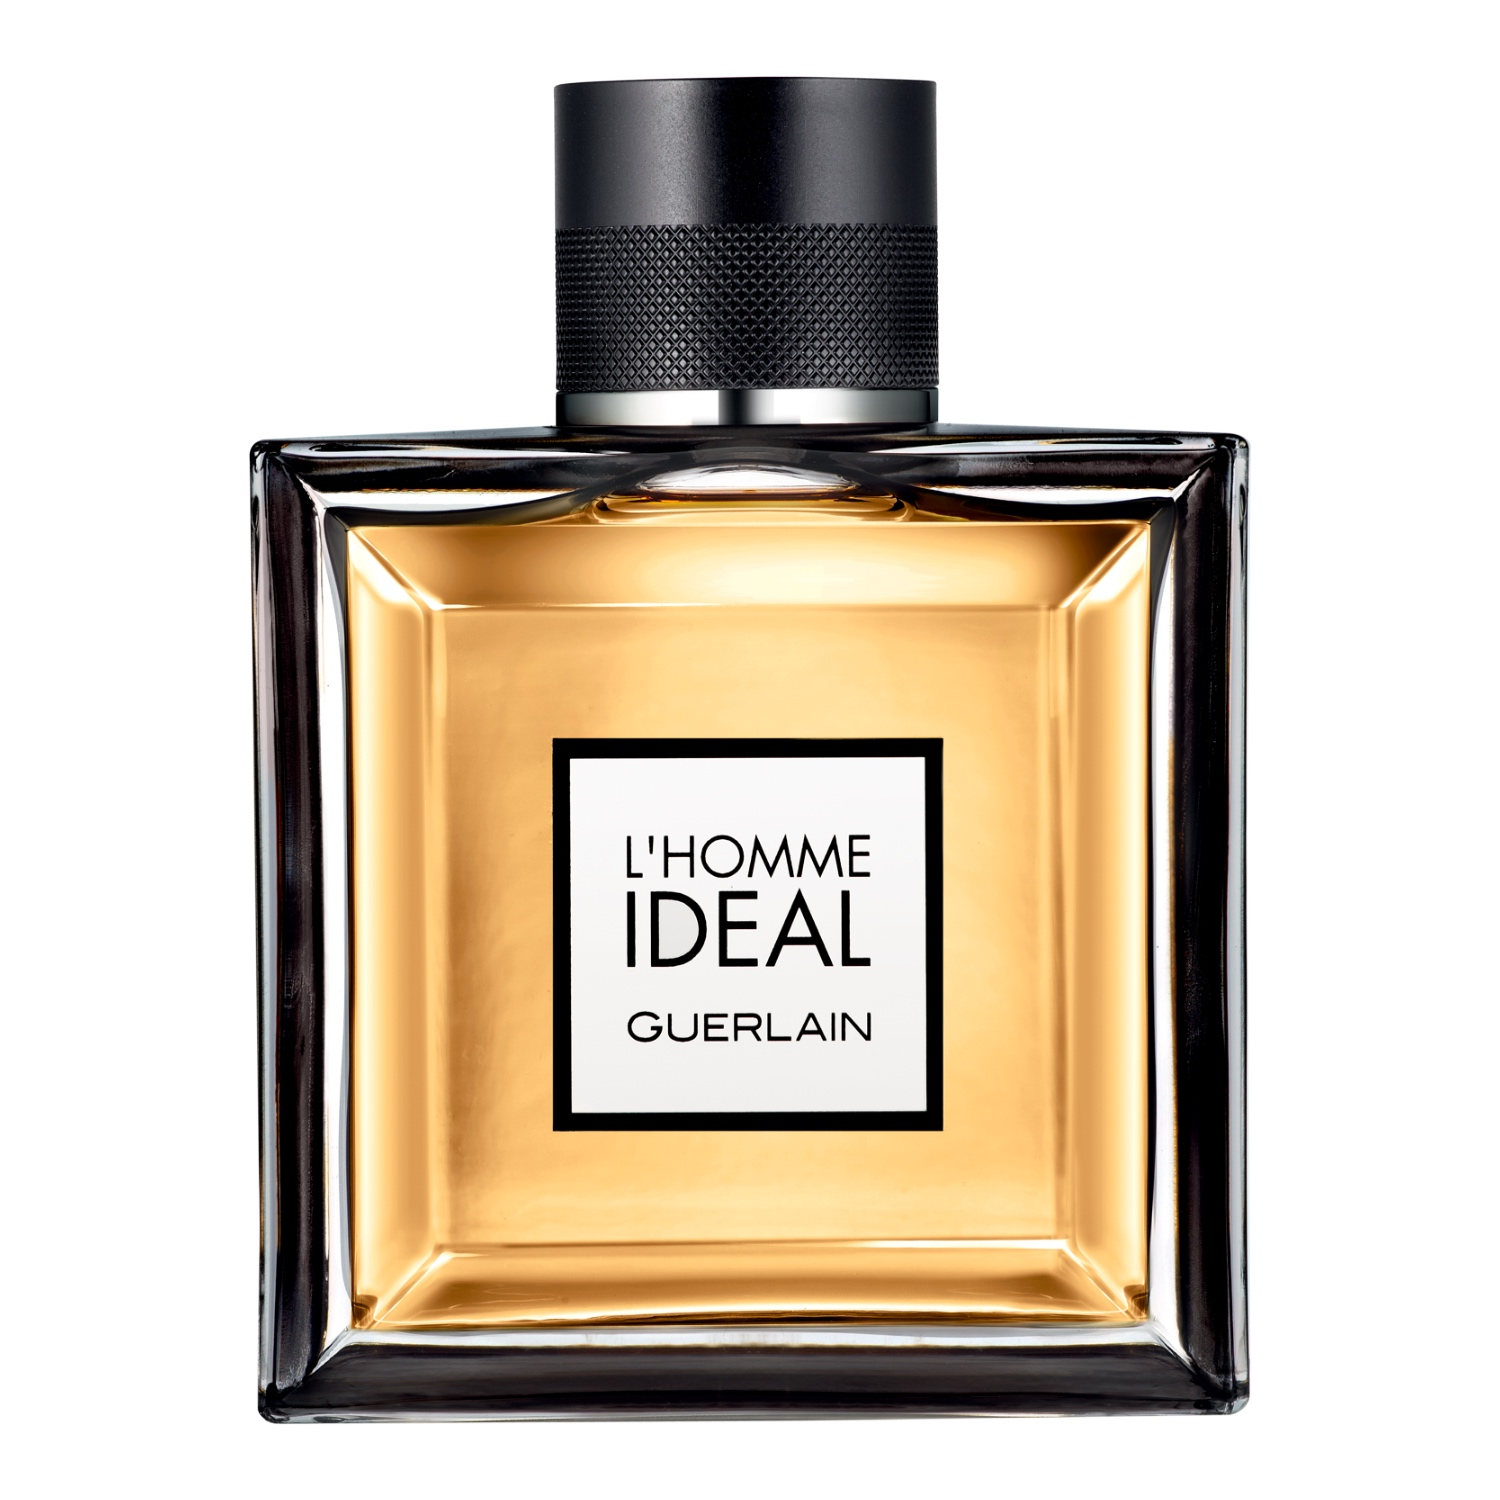 The Candies 2014 The Very Best And Very Worst Perfumes Of 2014